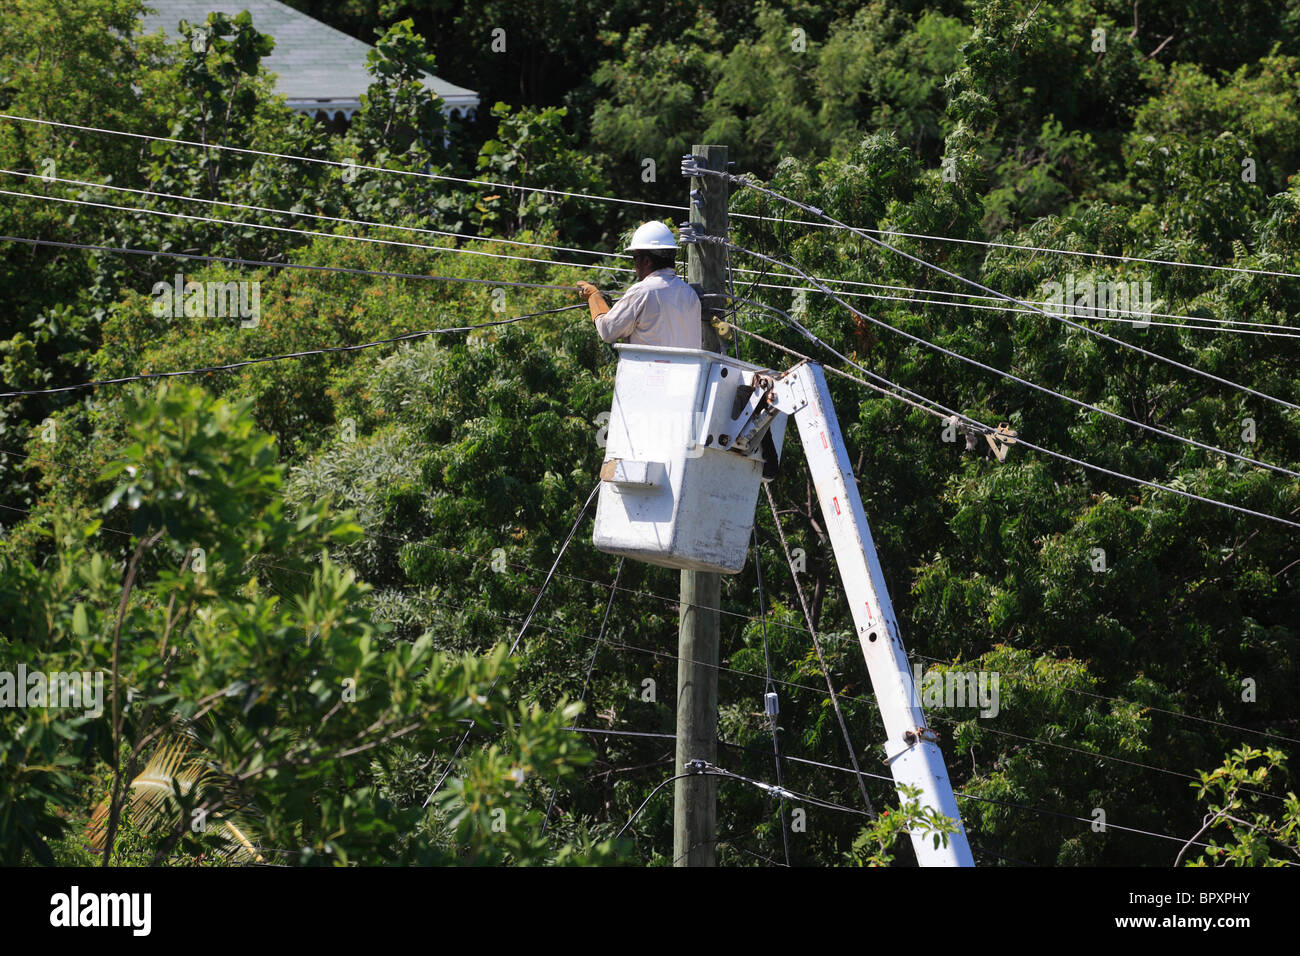 Repairing power transmission electricity supply - Stock Image